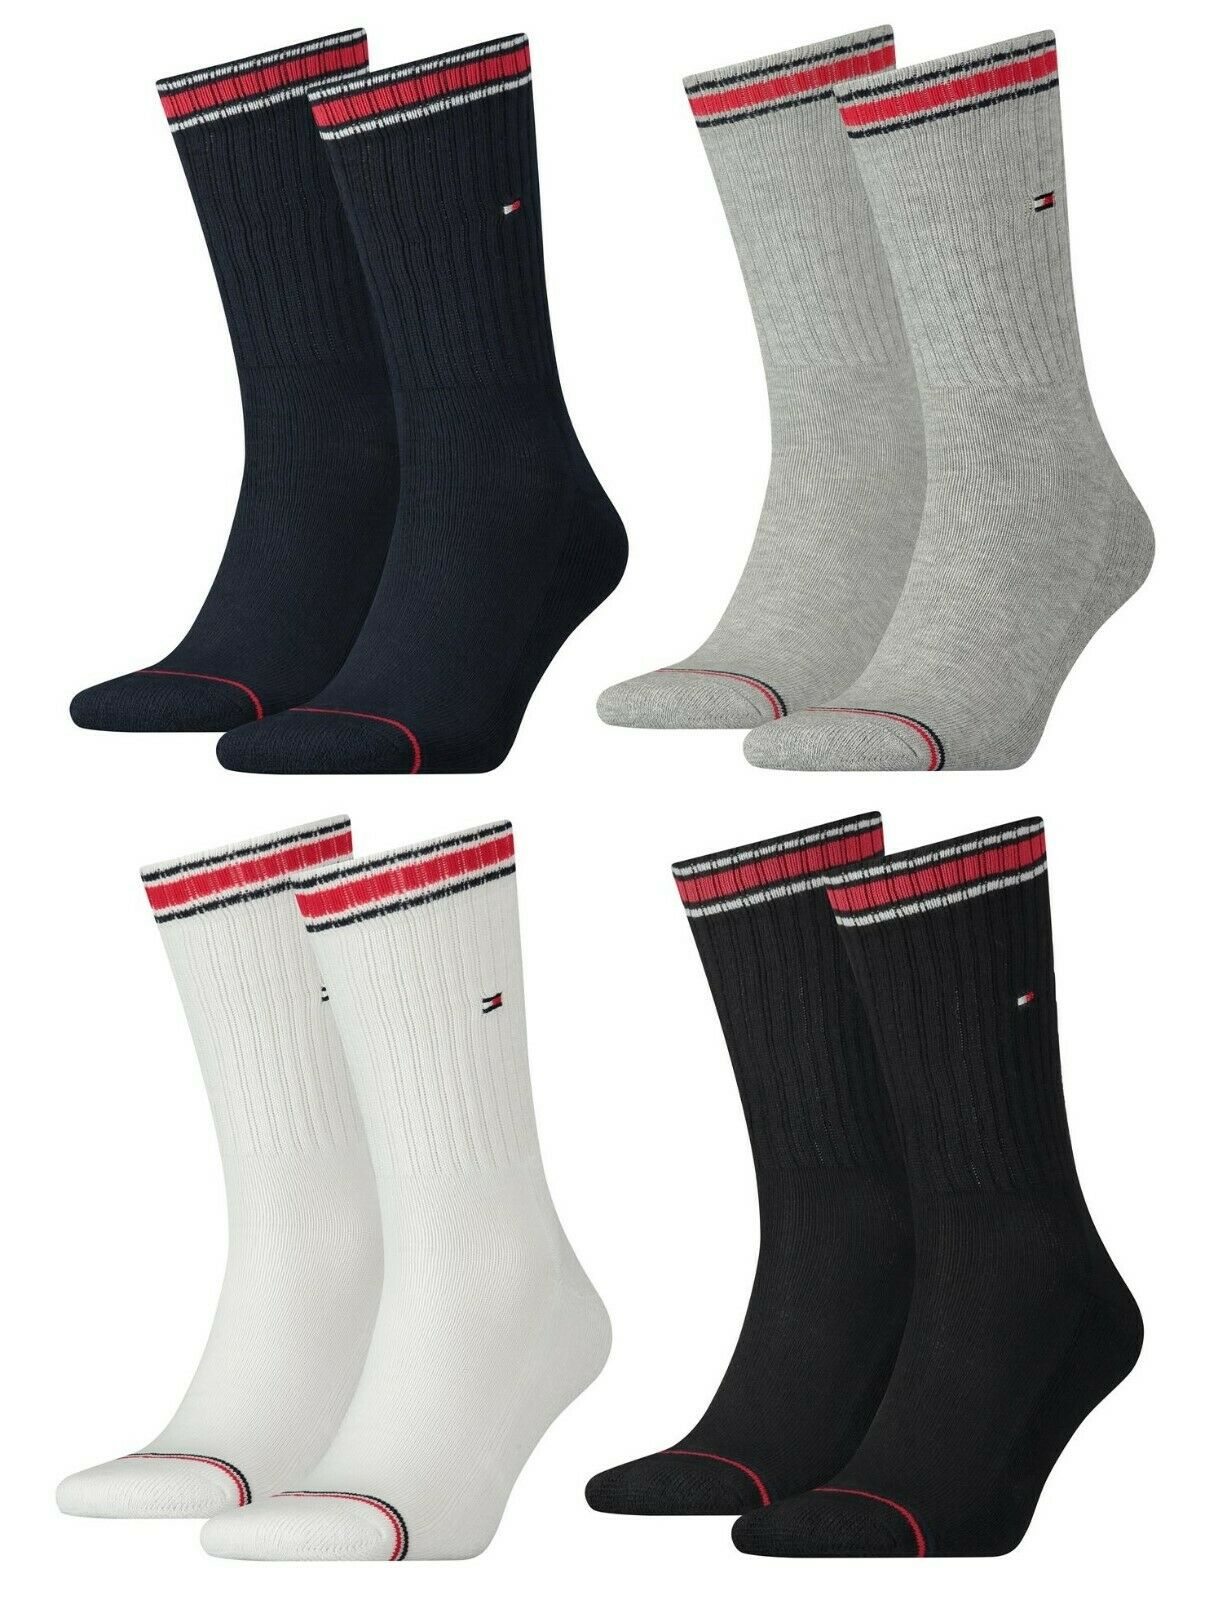 Tommy Hilfiger TH MEN ICONIC SOCK SPORTS 2 4 Paar Tennissocke Socke Frotteesohle